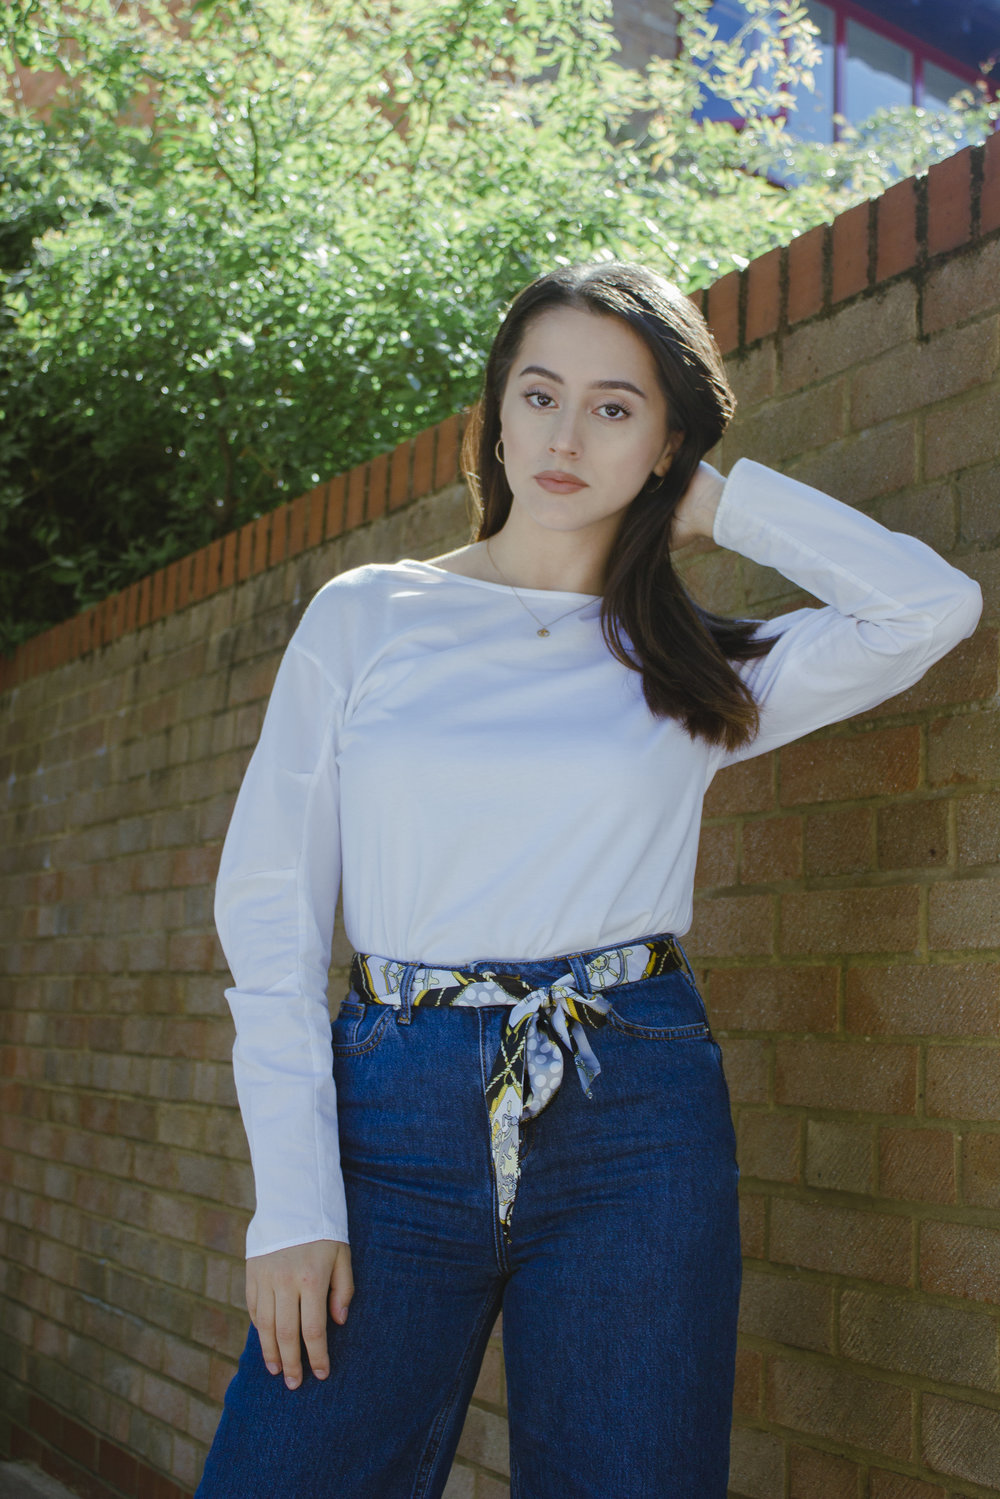 Top - Limited Edition, M&S Jeans - River Island